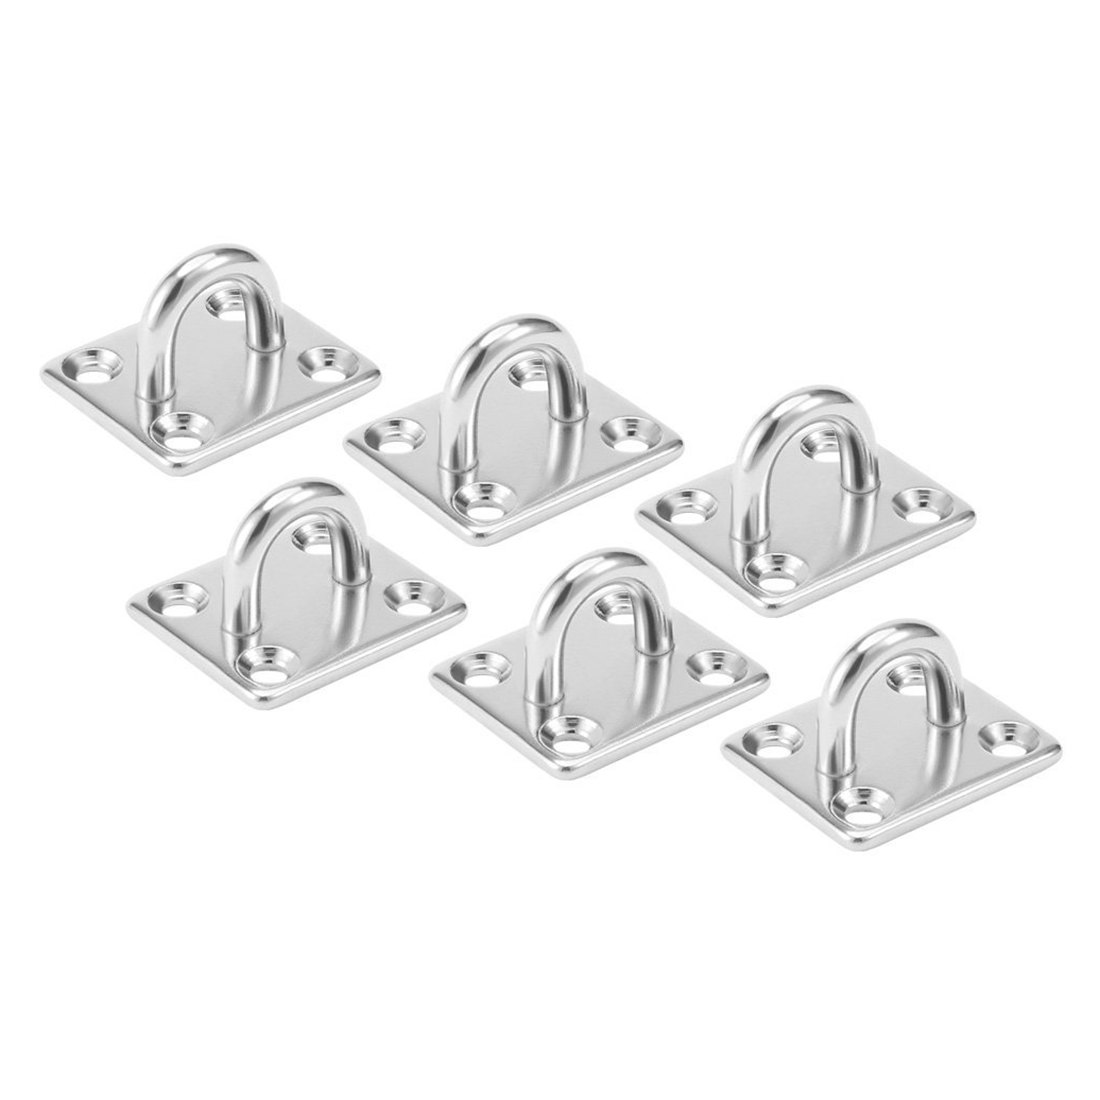 304 Stainless Steel 5mm Thick Ring Square Sail Shade Pad Eye Plate Boat Rigging 6pcs Dropshipping